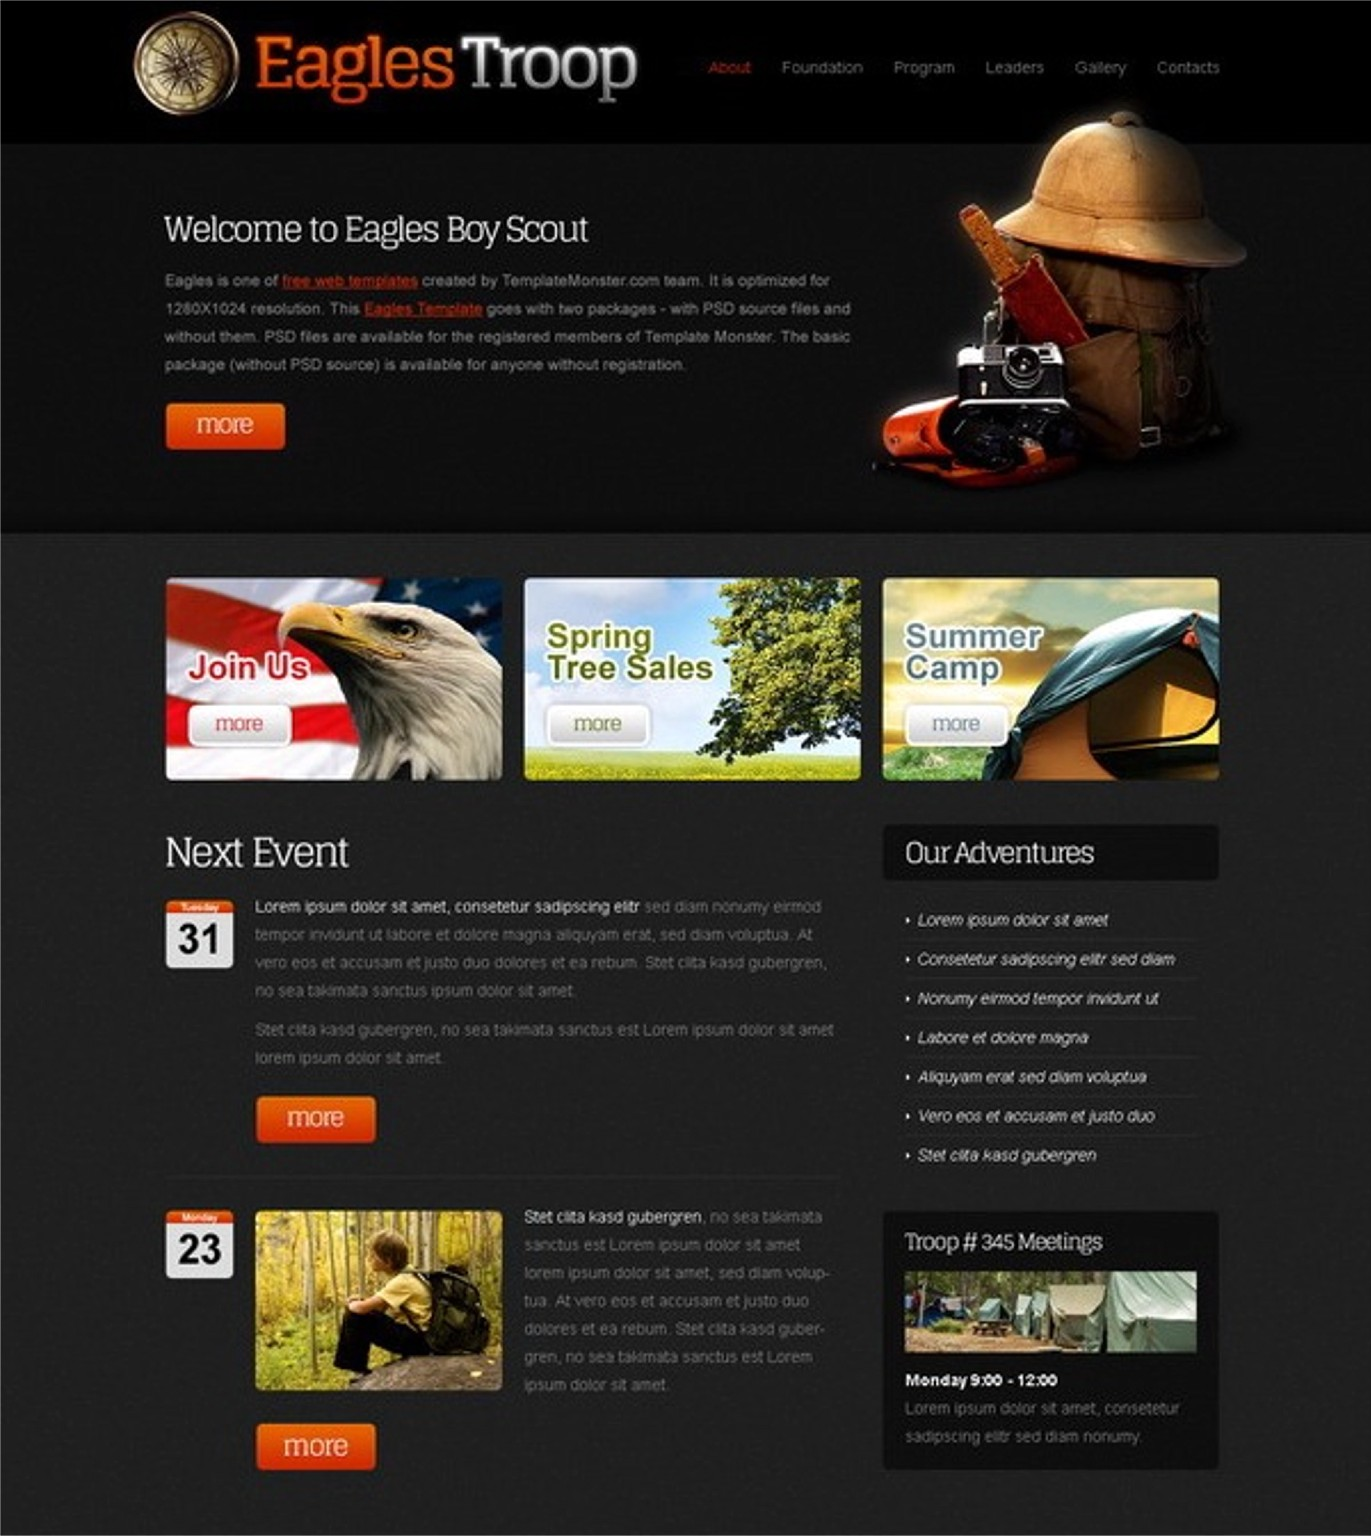 JRL-Enterprises LLC Web Templates10103